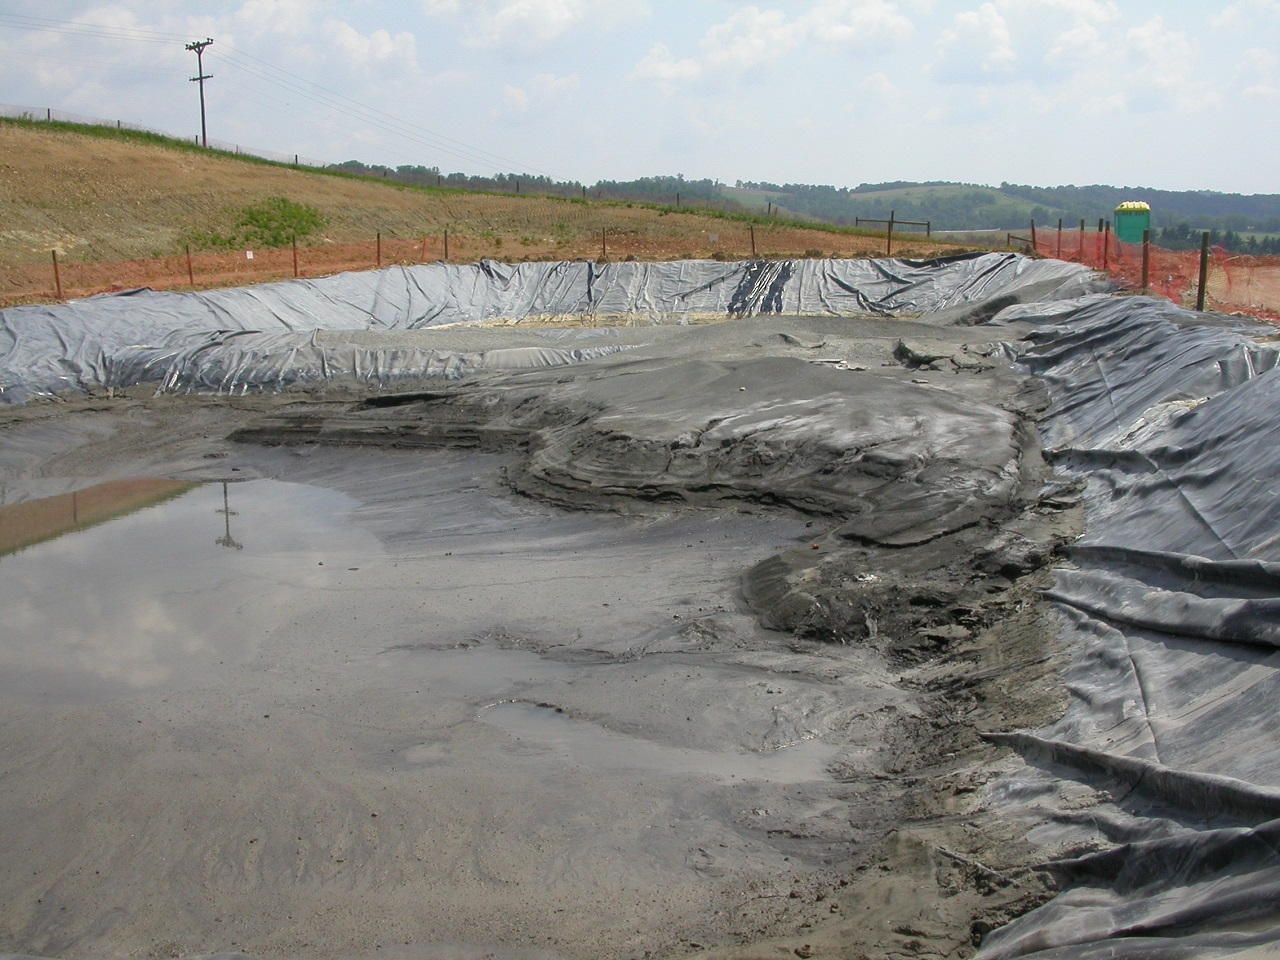 Forums on New Reports on the Health and Economic Impacts of Fracking in Pennsylvania18